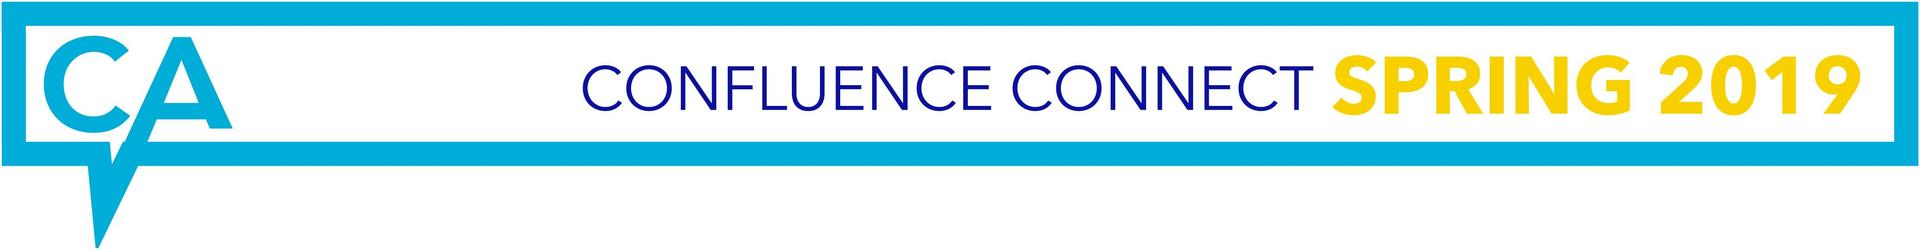 Confluence Connect - Spring 2019